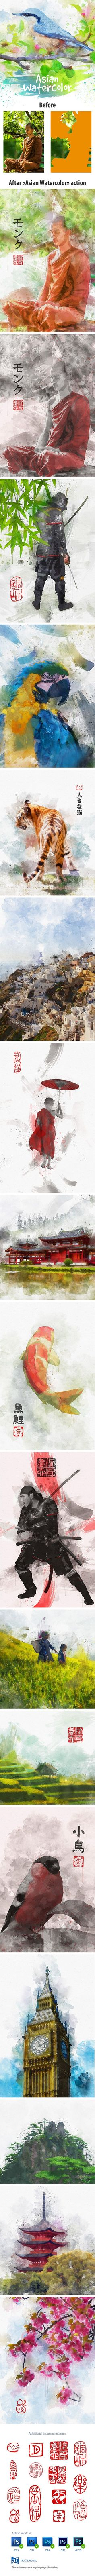 Asian Watercolor Photoshop Action - Photo Effects Actions Download here: https://graphicriver.net/item/asian-watercolor-photoshop-action/20155346?ref=classicdesignp